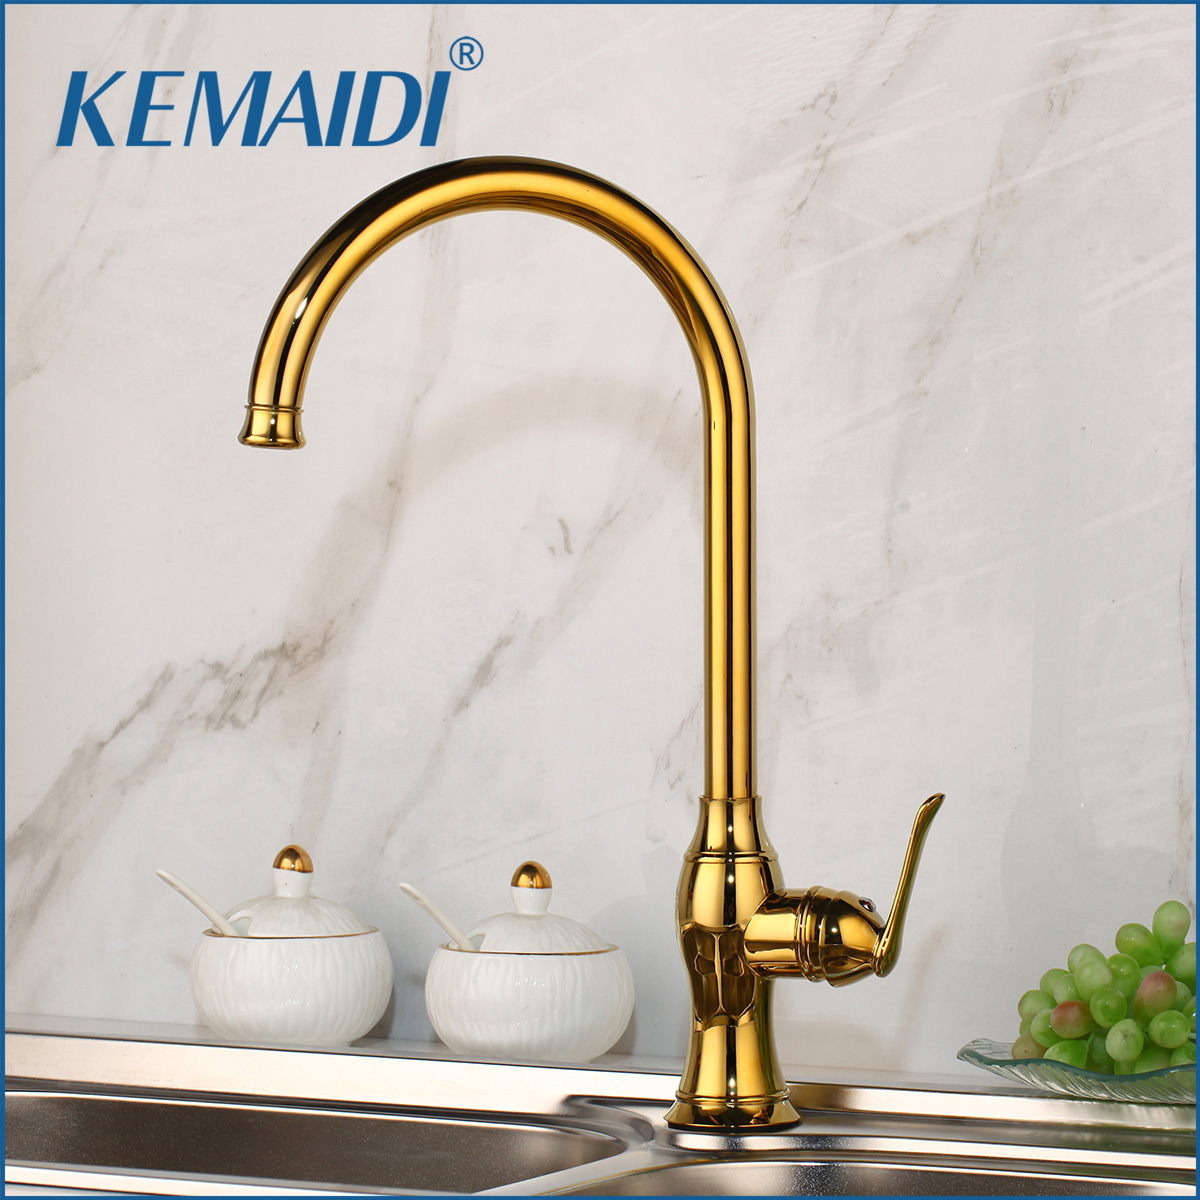 KEMAIDI Luxury Gold Kitchen Faucet Gold Brass For Cold And Hot Mixer Tap Sink Faucet Vegetable Washing Basin Brushed Brass